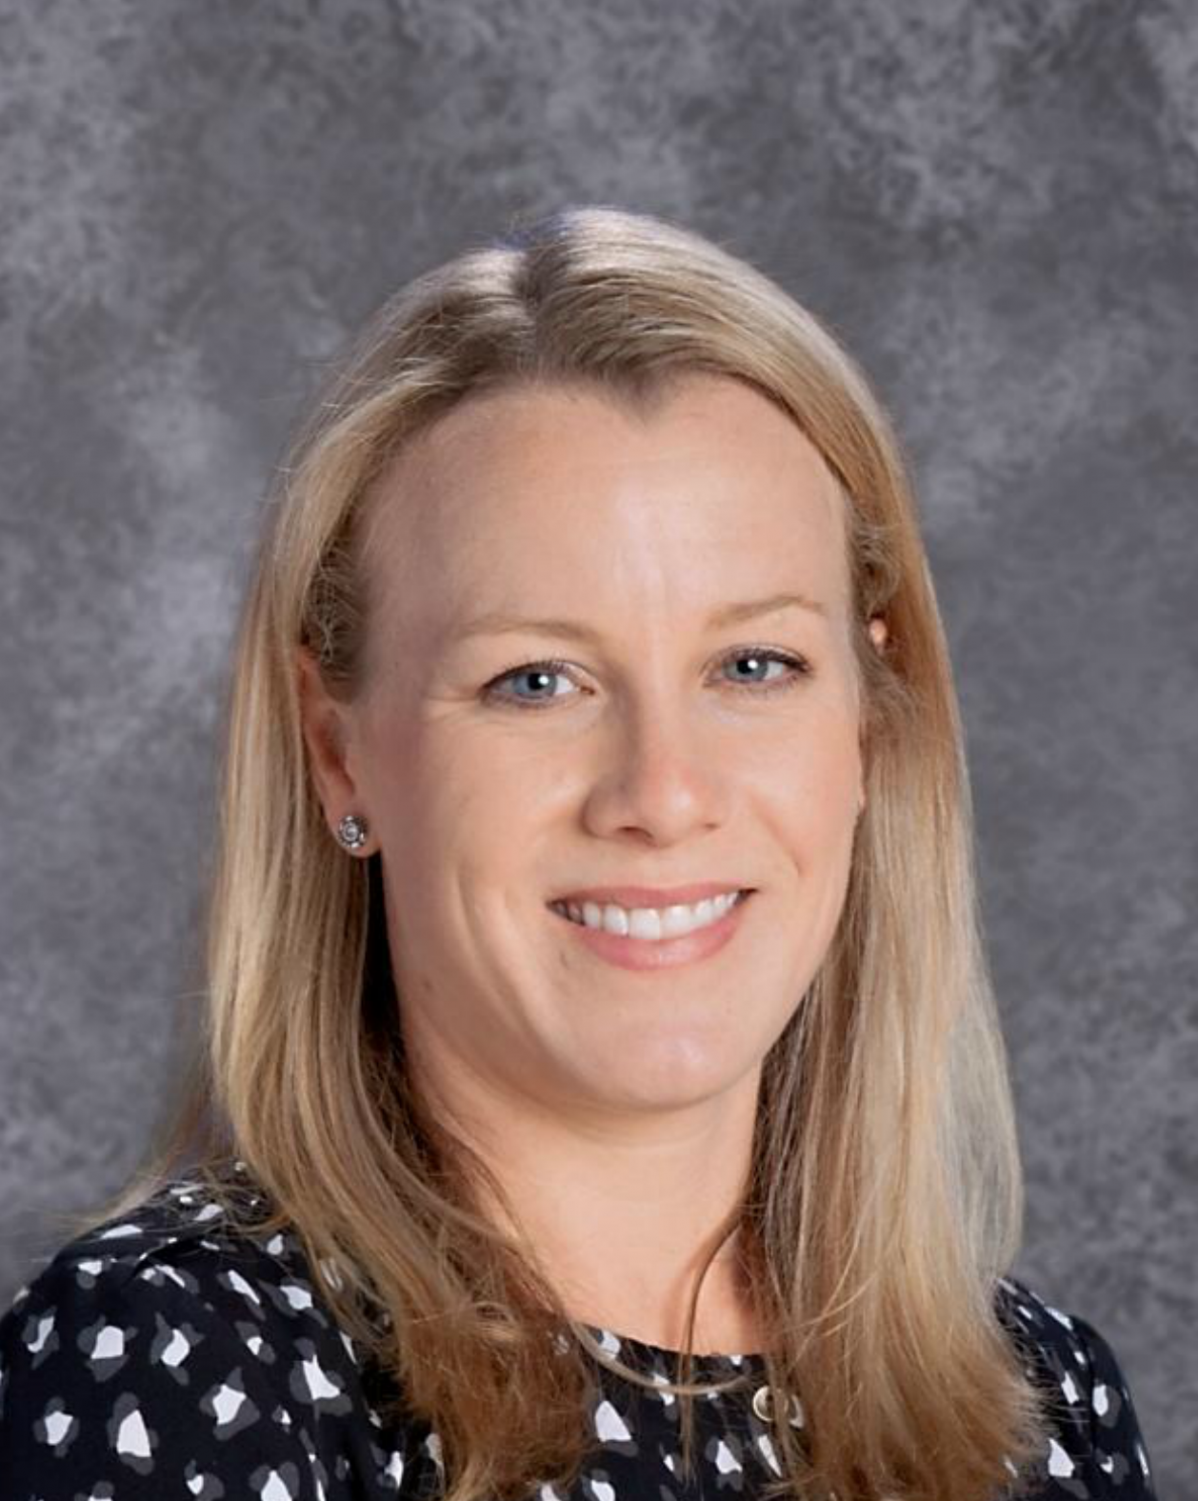 Mrs. Erin Newman joined the West Math department in the 2018-2019 school year.